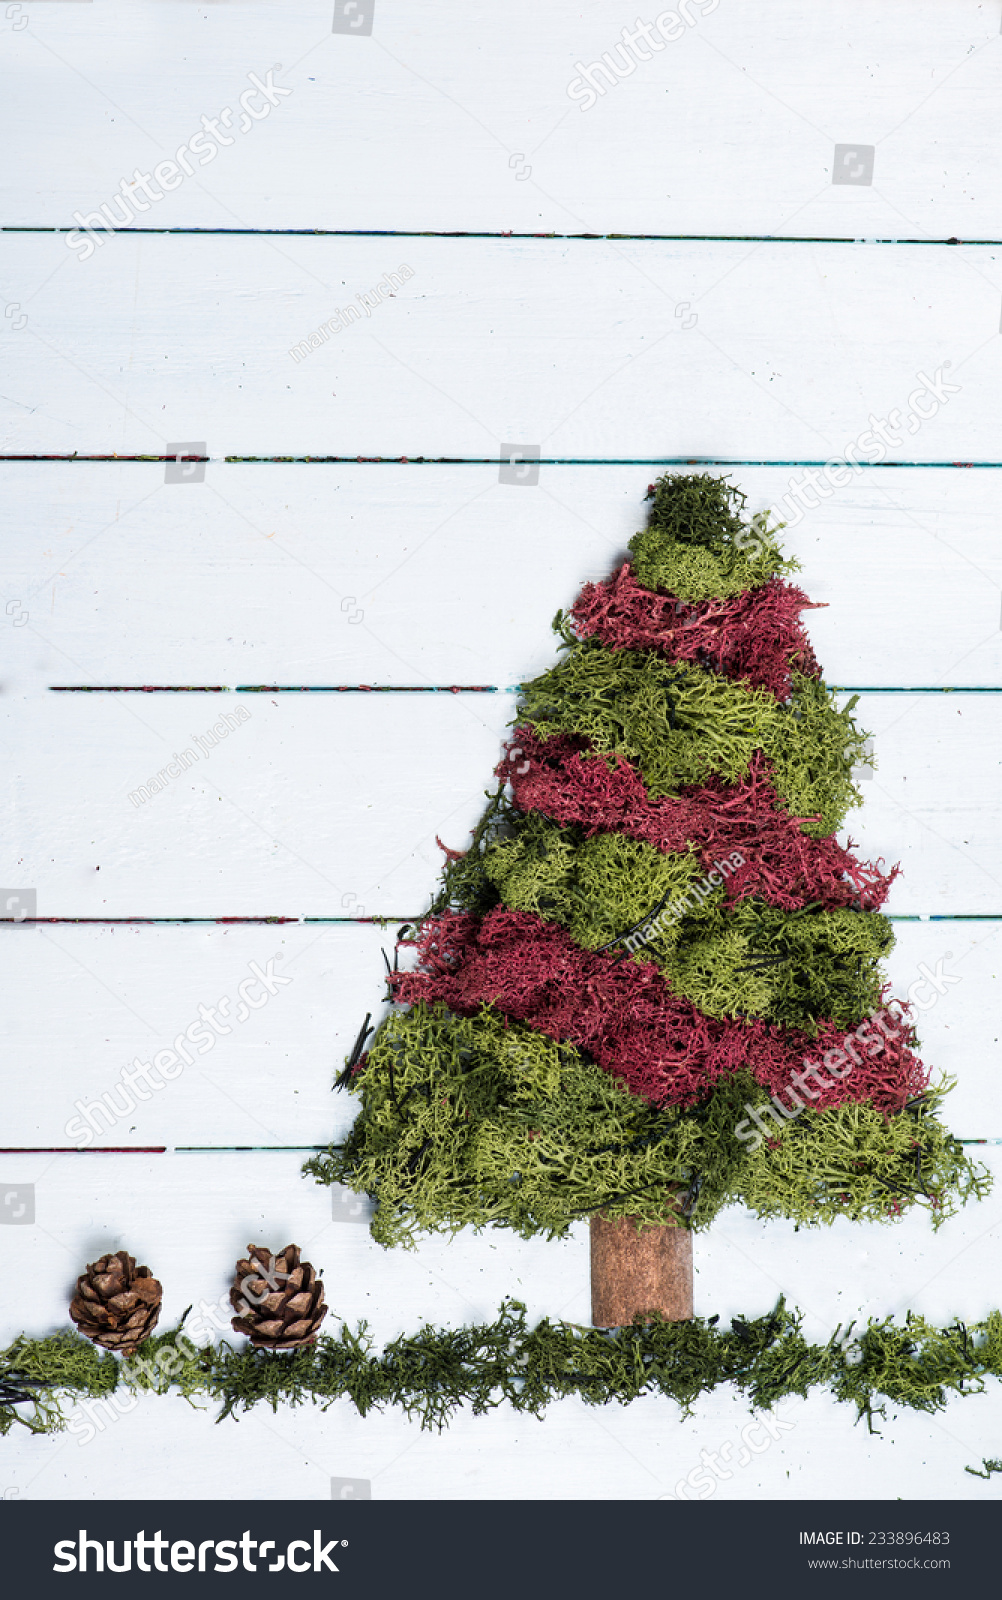 Christmas Tree Made Green Red Moss Stock Photo Edit Now 233896483